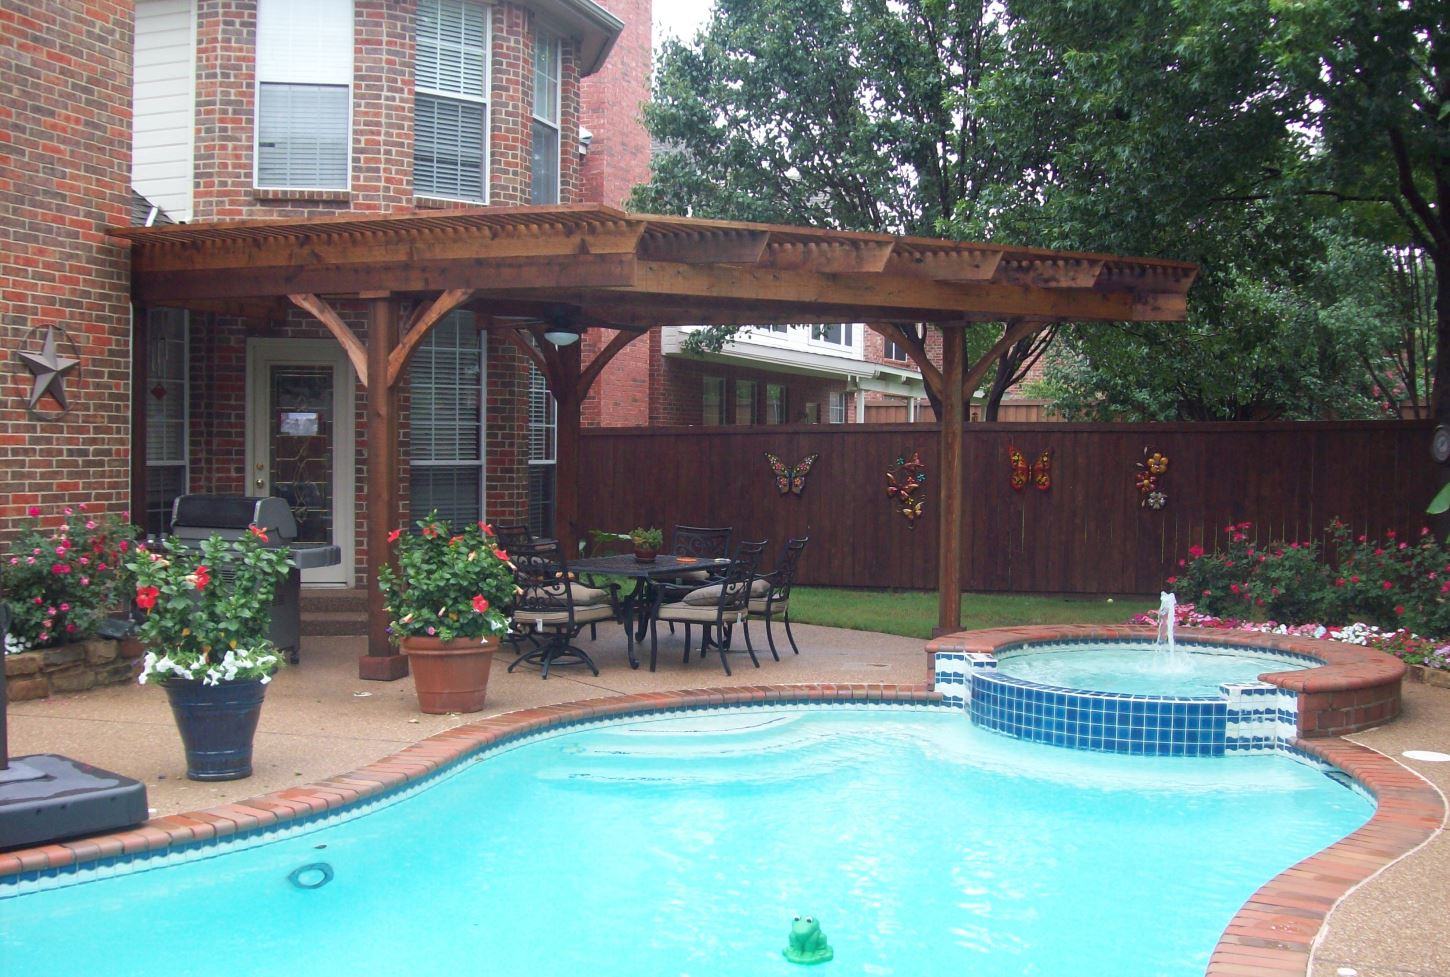 Side View - Uniquely Shaped Pergola - MRZ Contracting Patio Covers - Pergolas - Other Construction